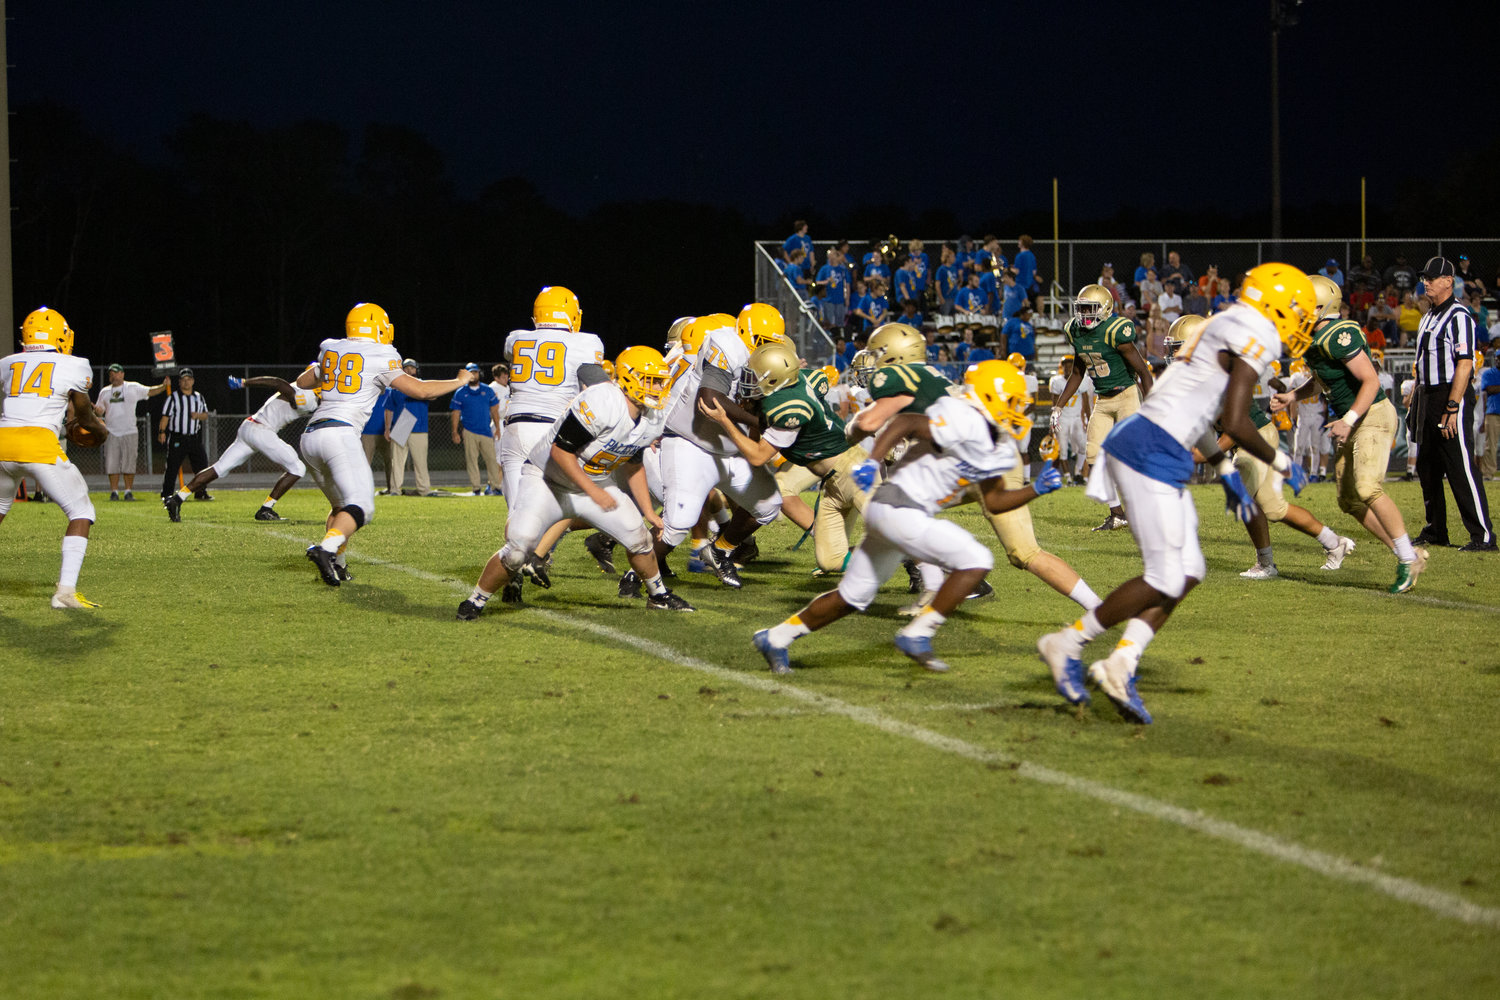 The Nease defense attempts a stop against Palatka.